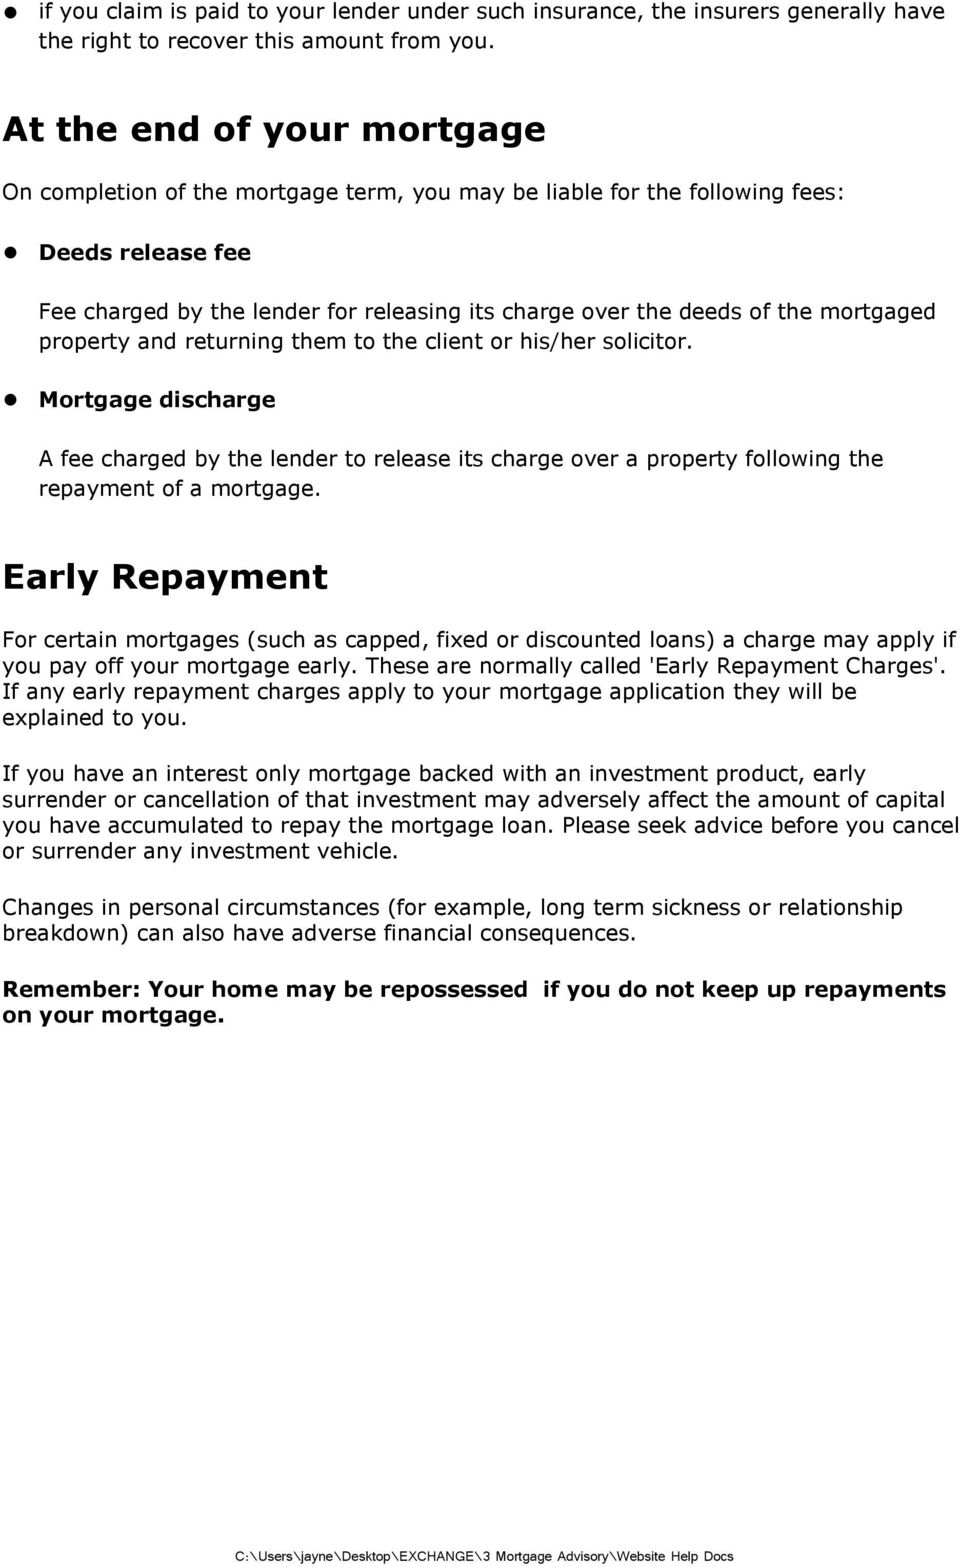 mortgaged property and returning them to the client or his/her solicitor. Mortgage discharge A fee charged by the lender to release its charge over a property following the repayment of a mortgage.